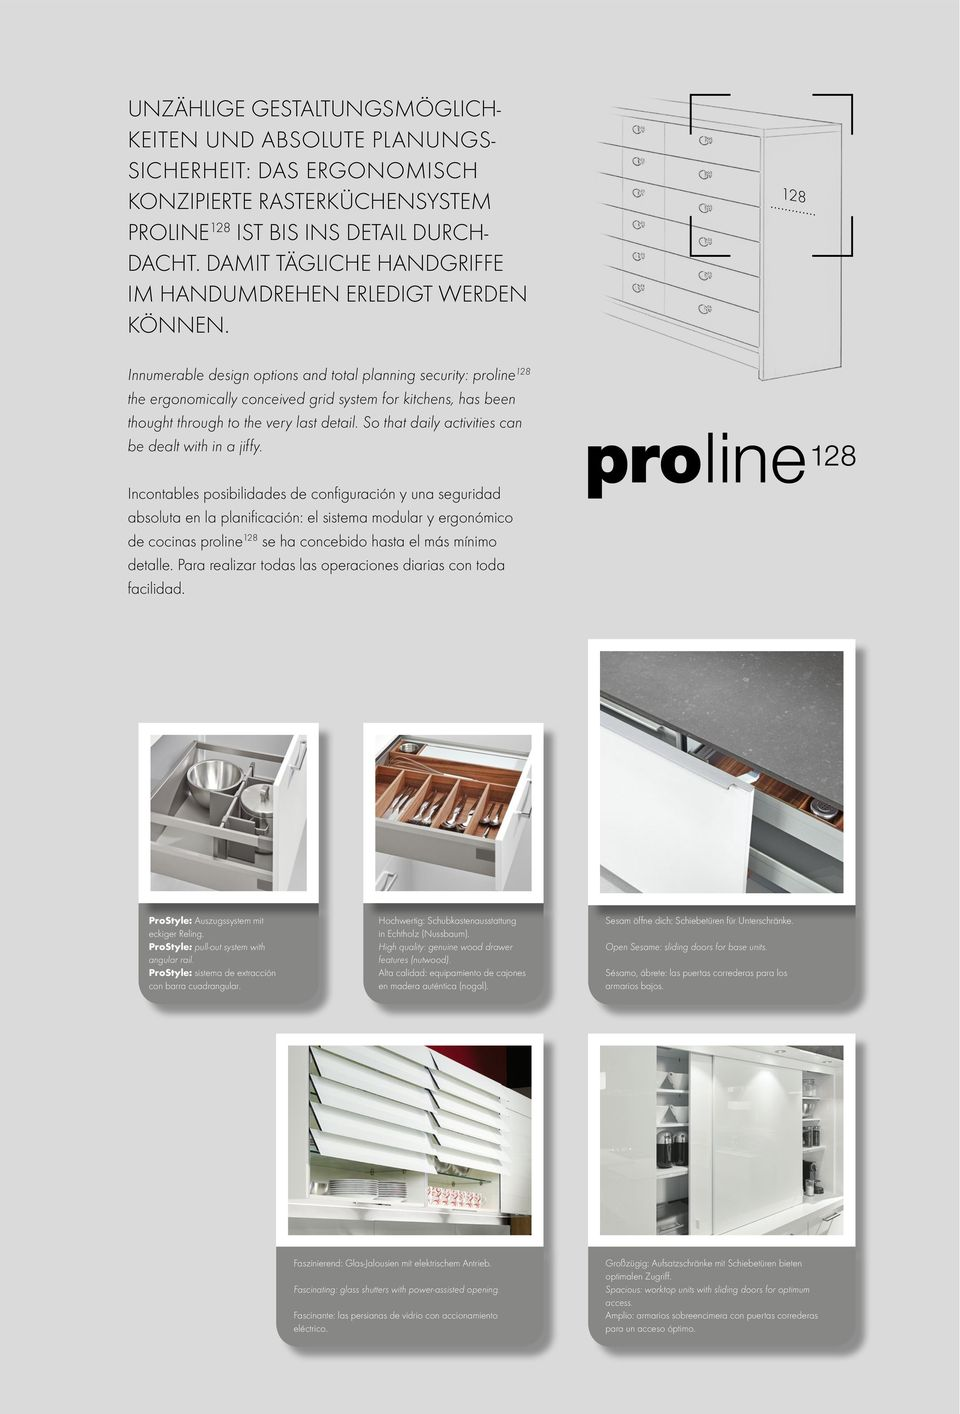 128 Innumerable design options and total planning security: proline 128 the ergonomically conceived grid system for kitchens, has been thought through to the very last detail.